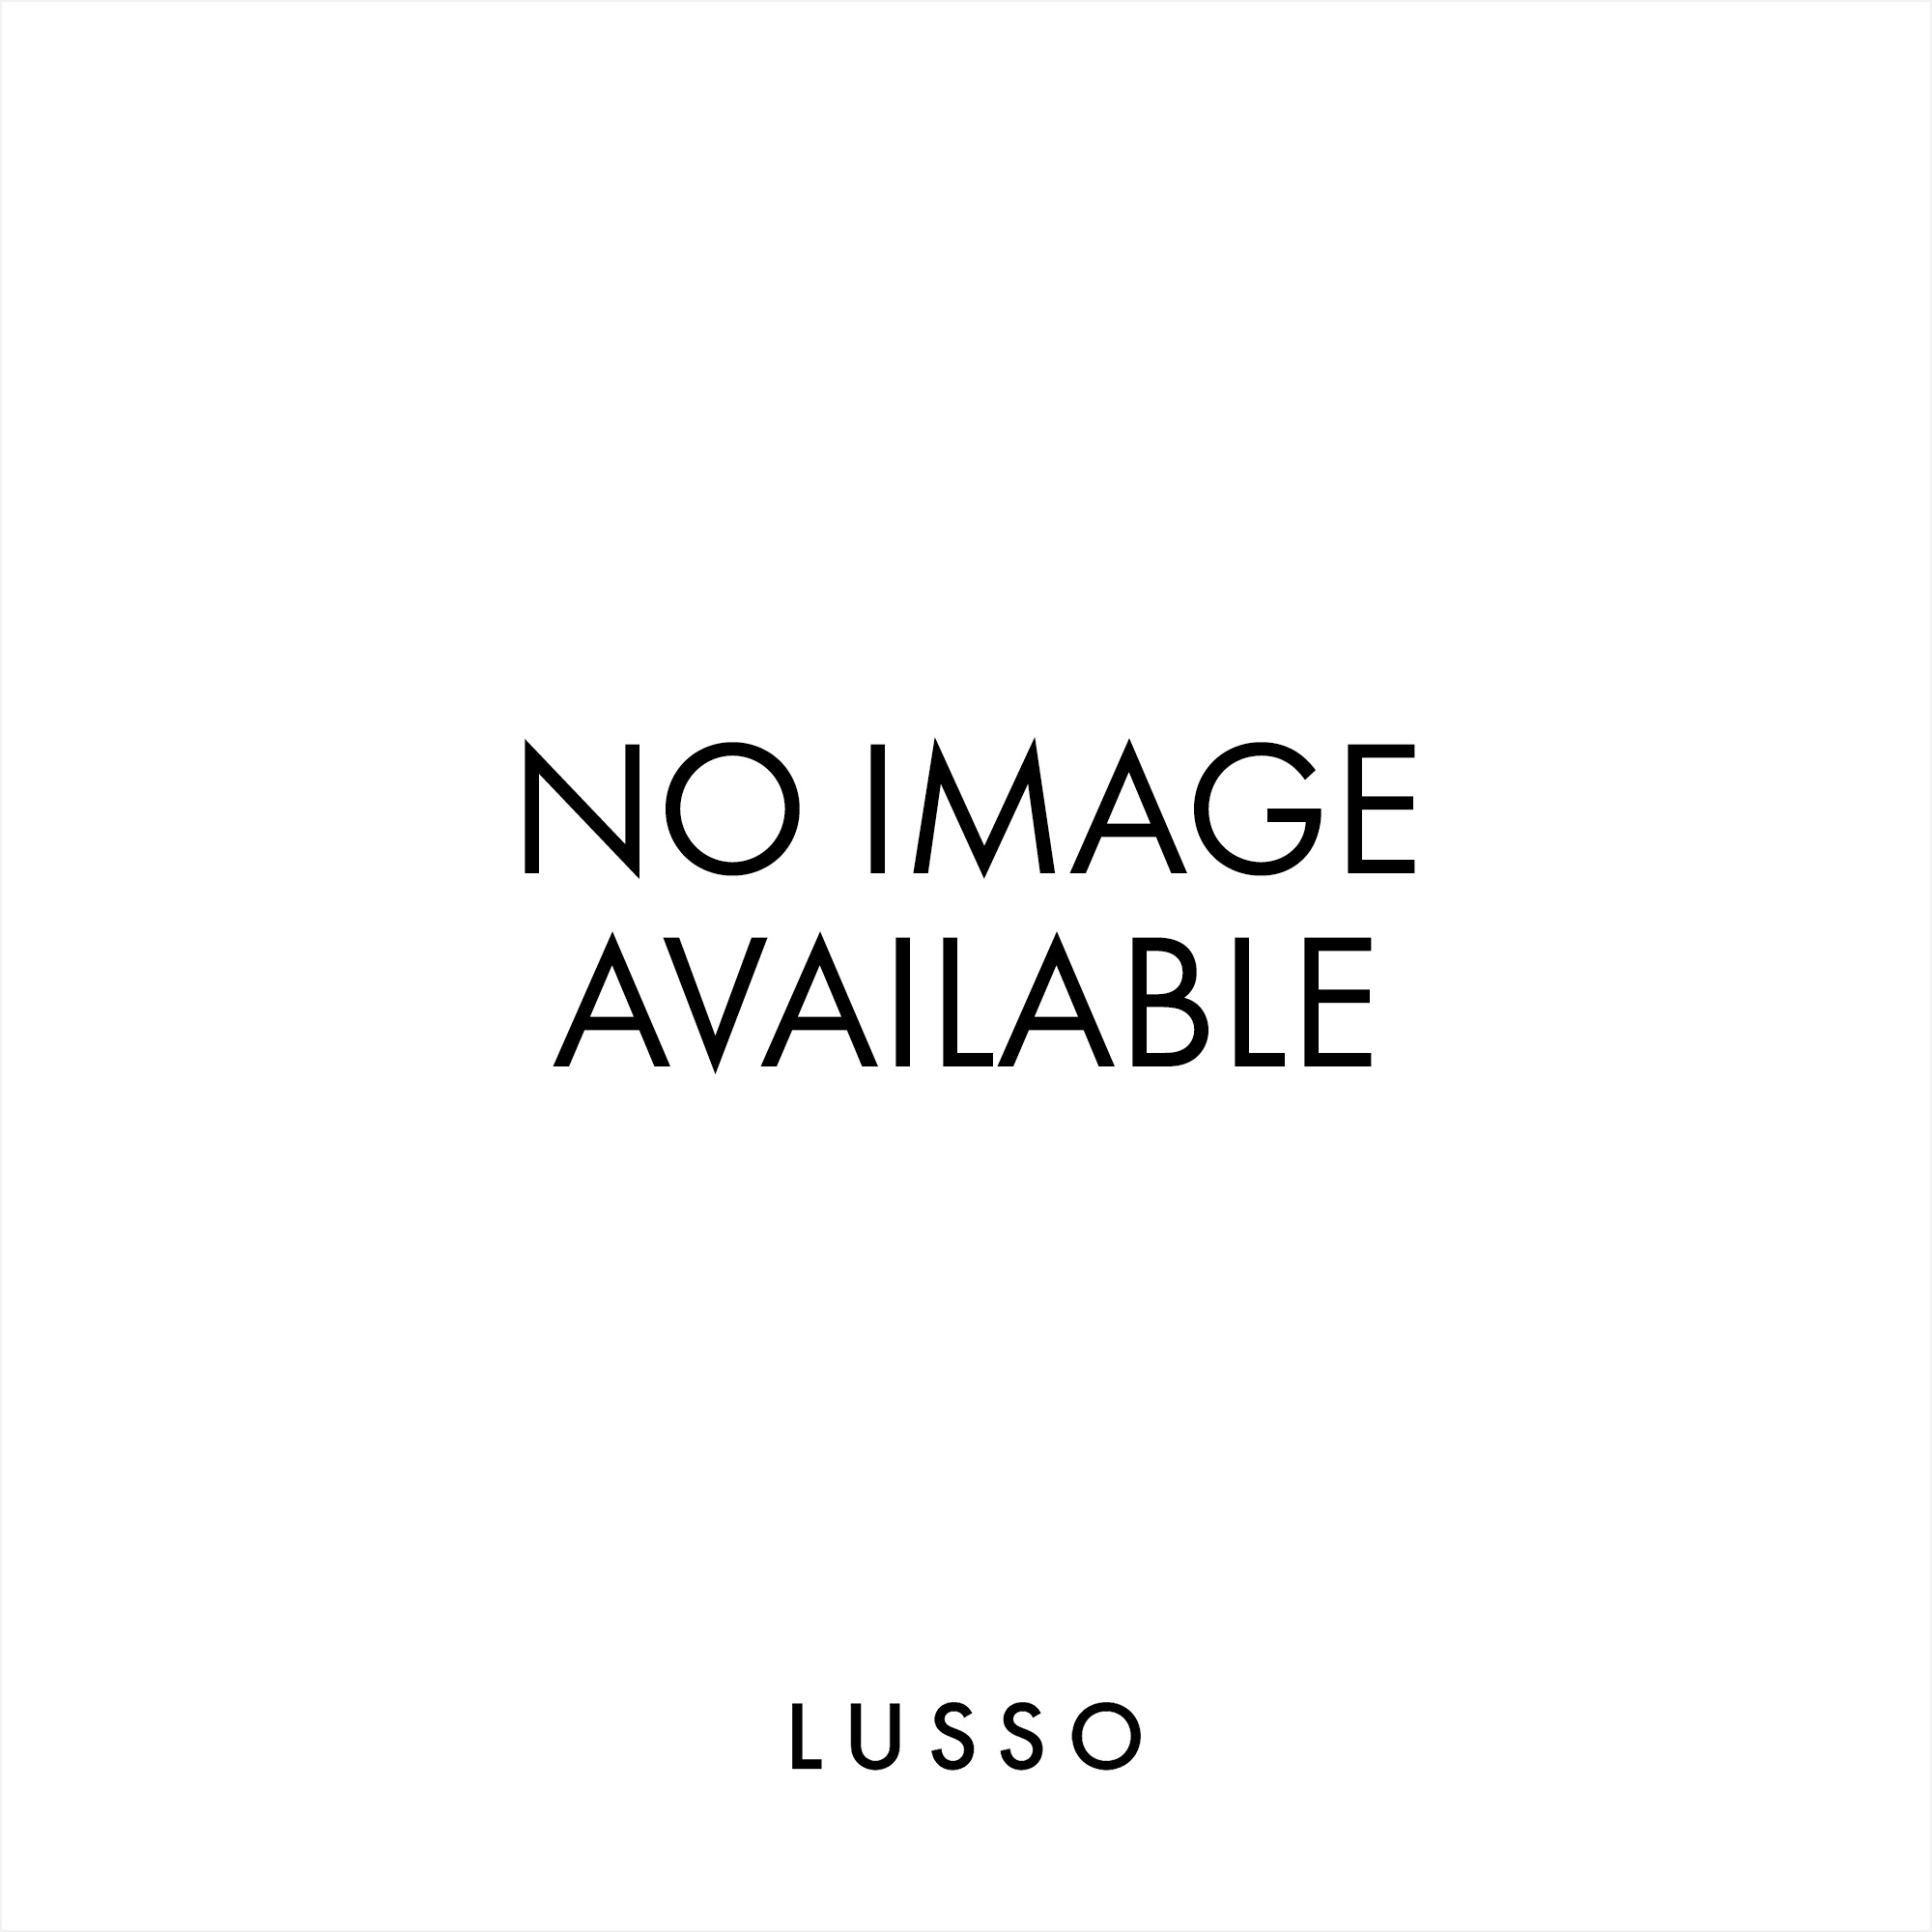 LUSSO STONE LUXE 900 MATTE WHITE STEEL FRAMED BATHROOM VANITY UNIT